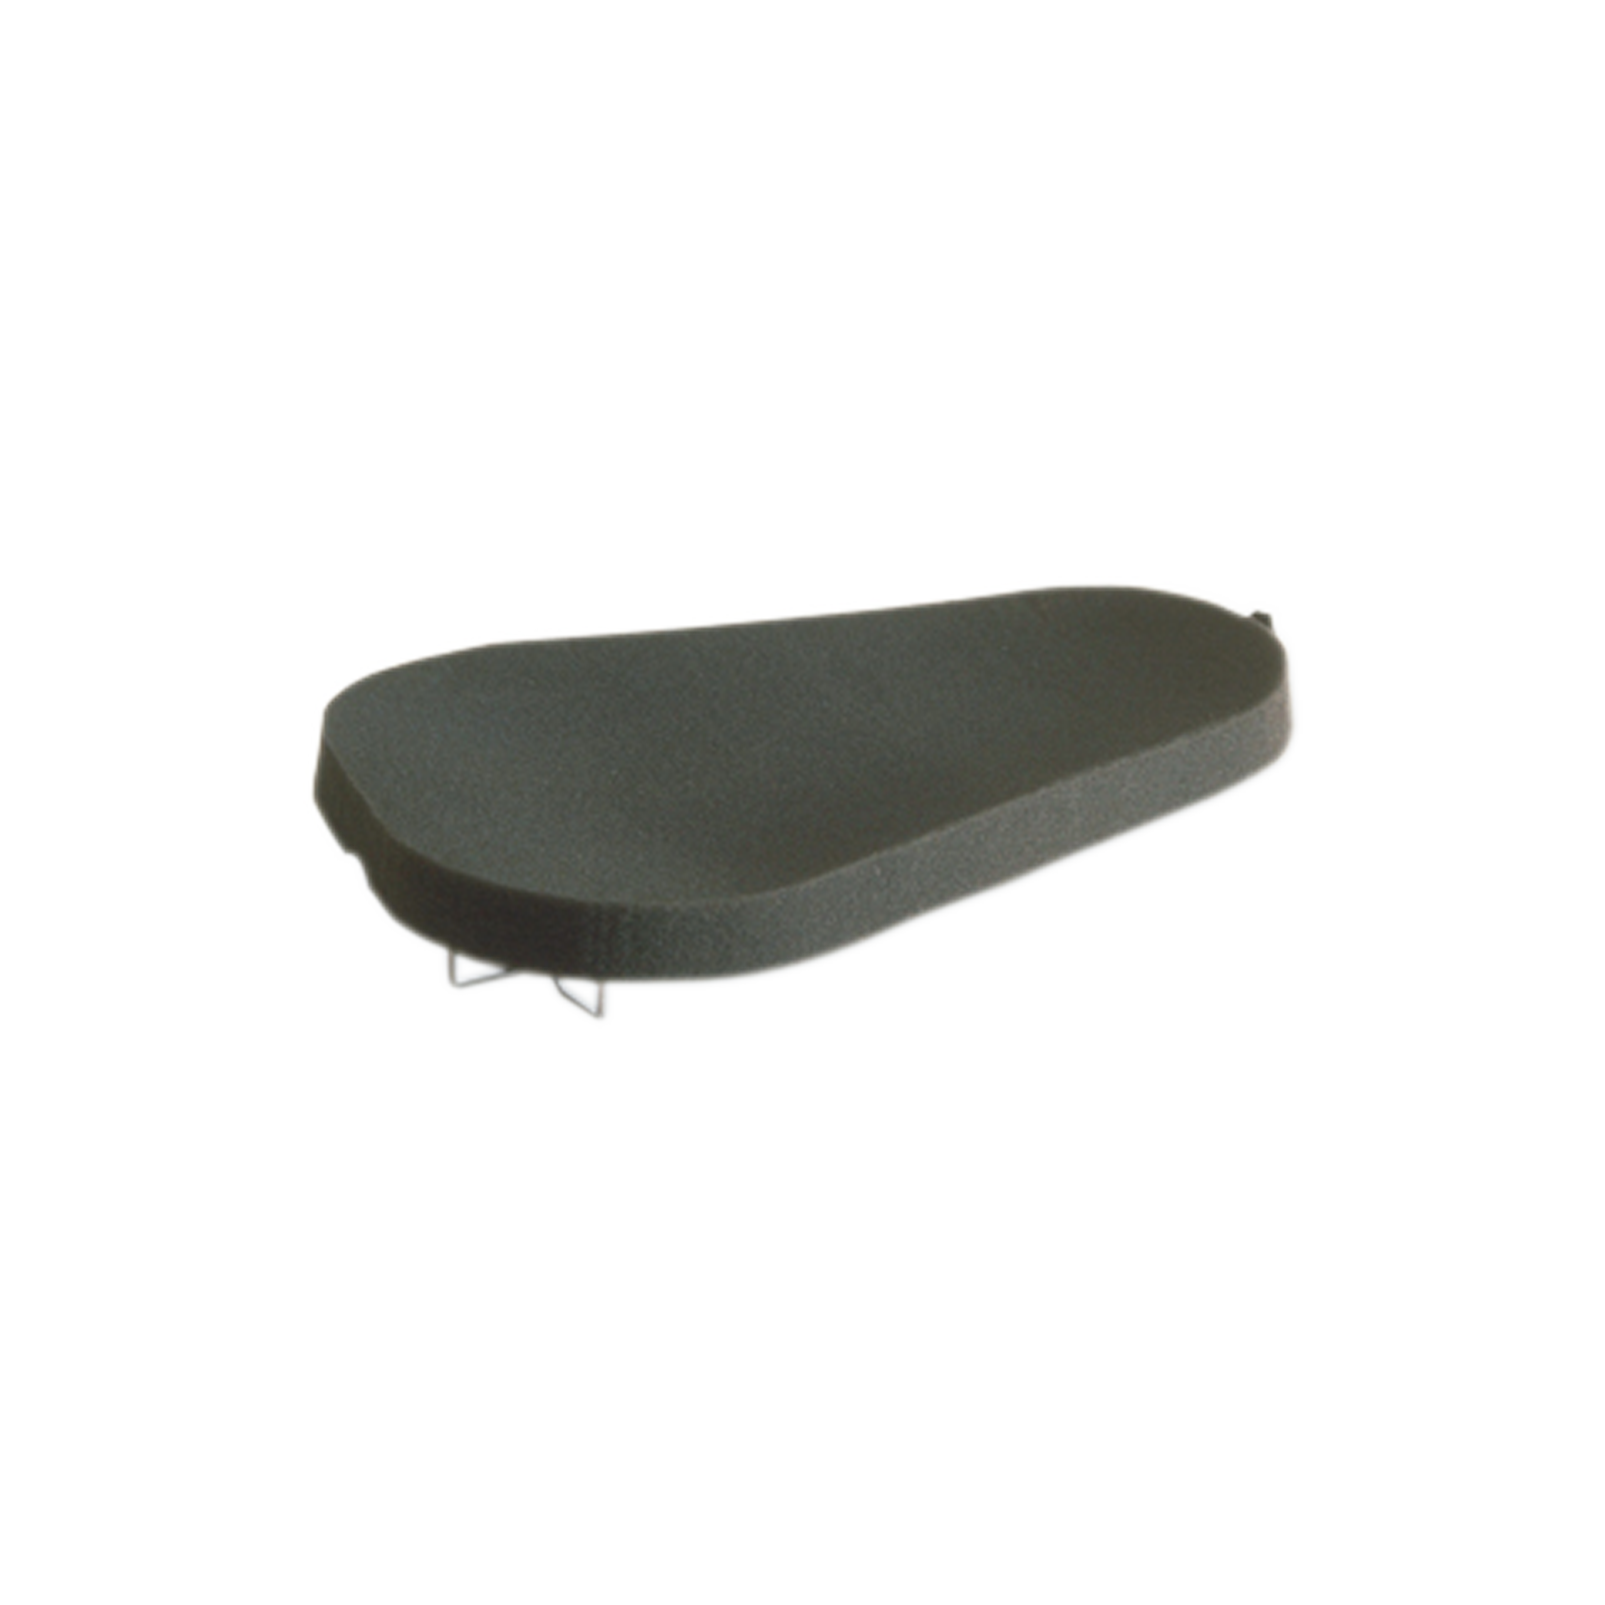 W547 - Black - Windscreen for use with C547 BL - Hero